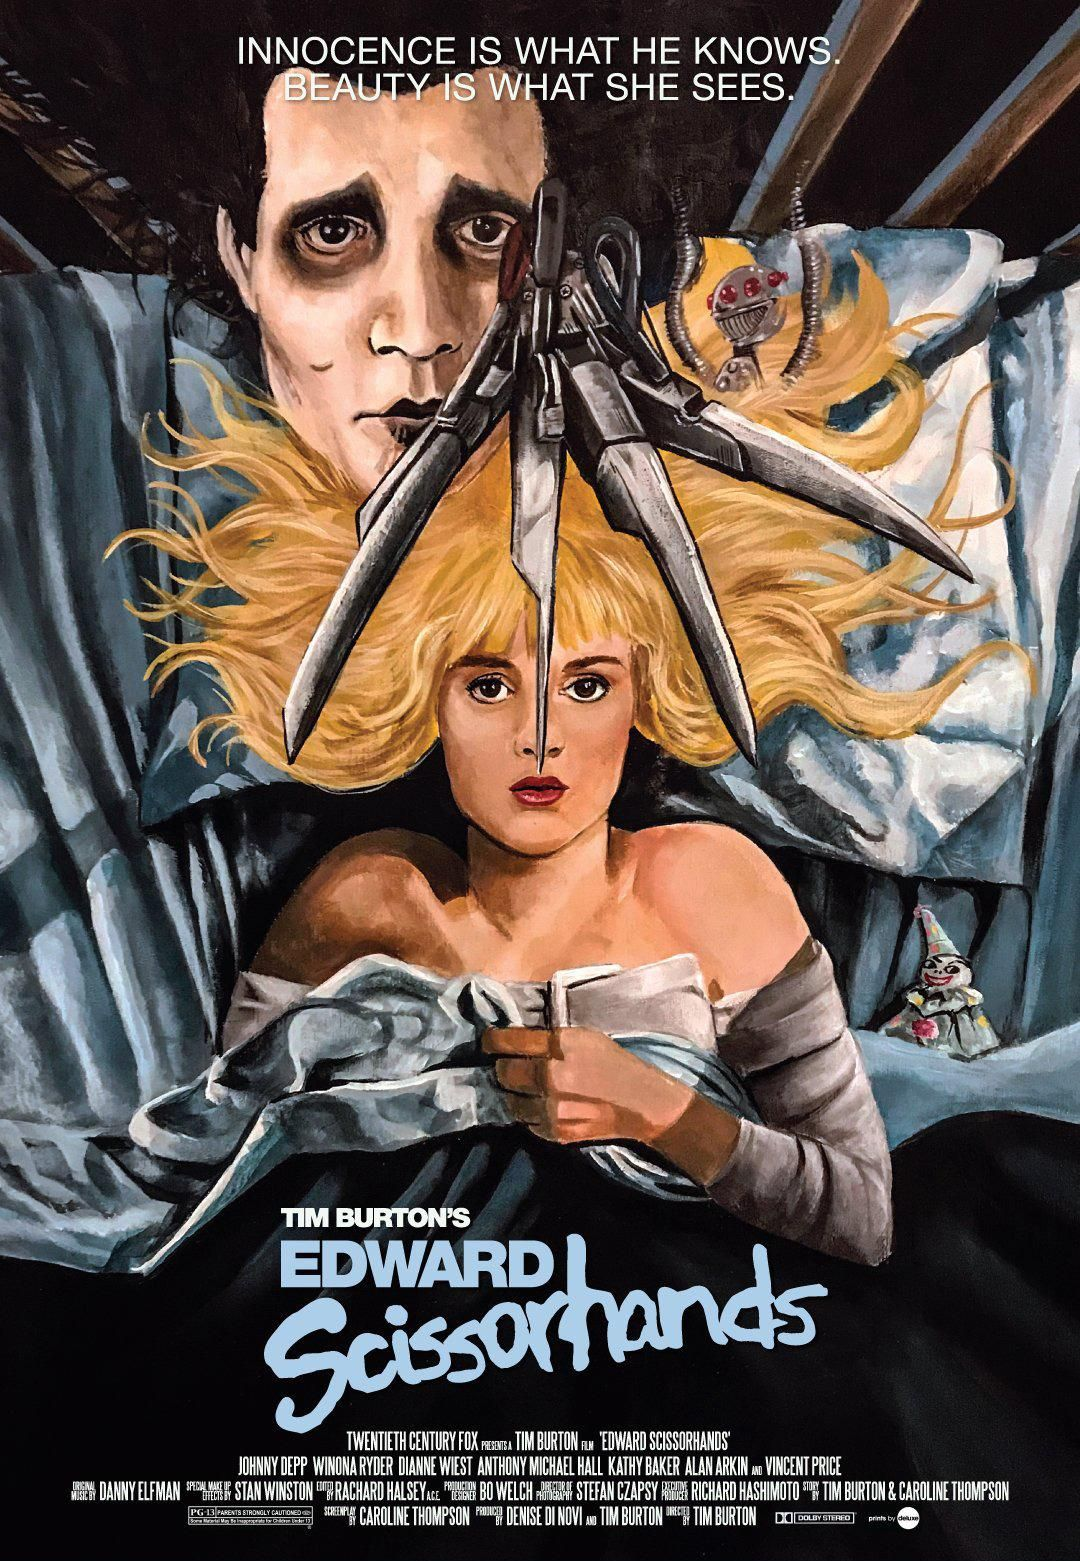 Edward Scissorhands 1990 One Of The Reasons I Felt In Love With